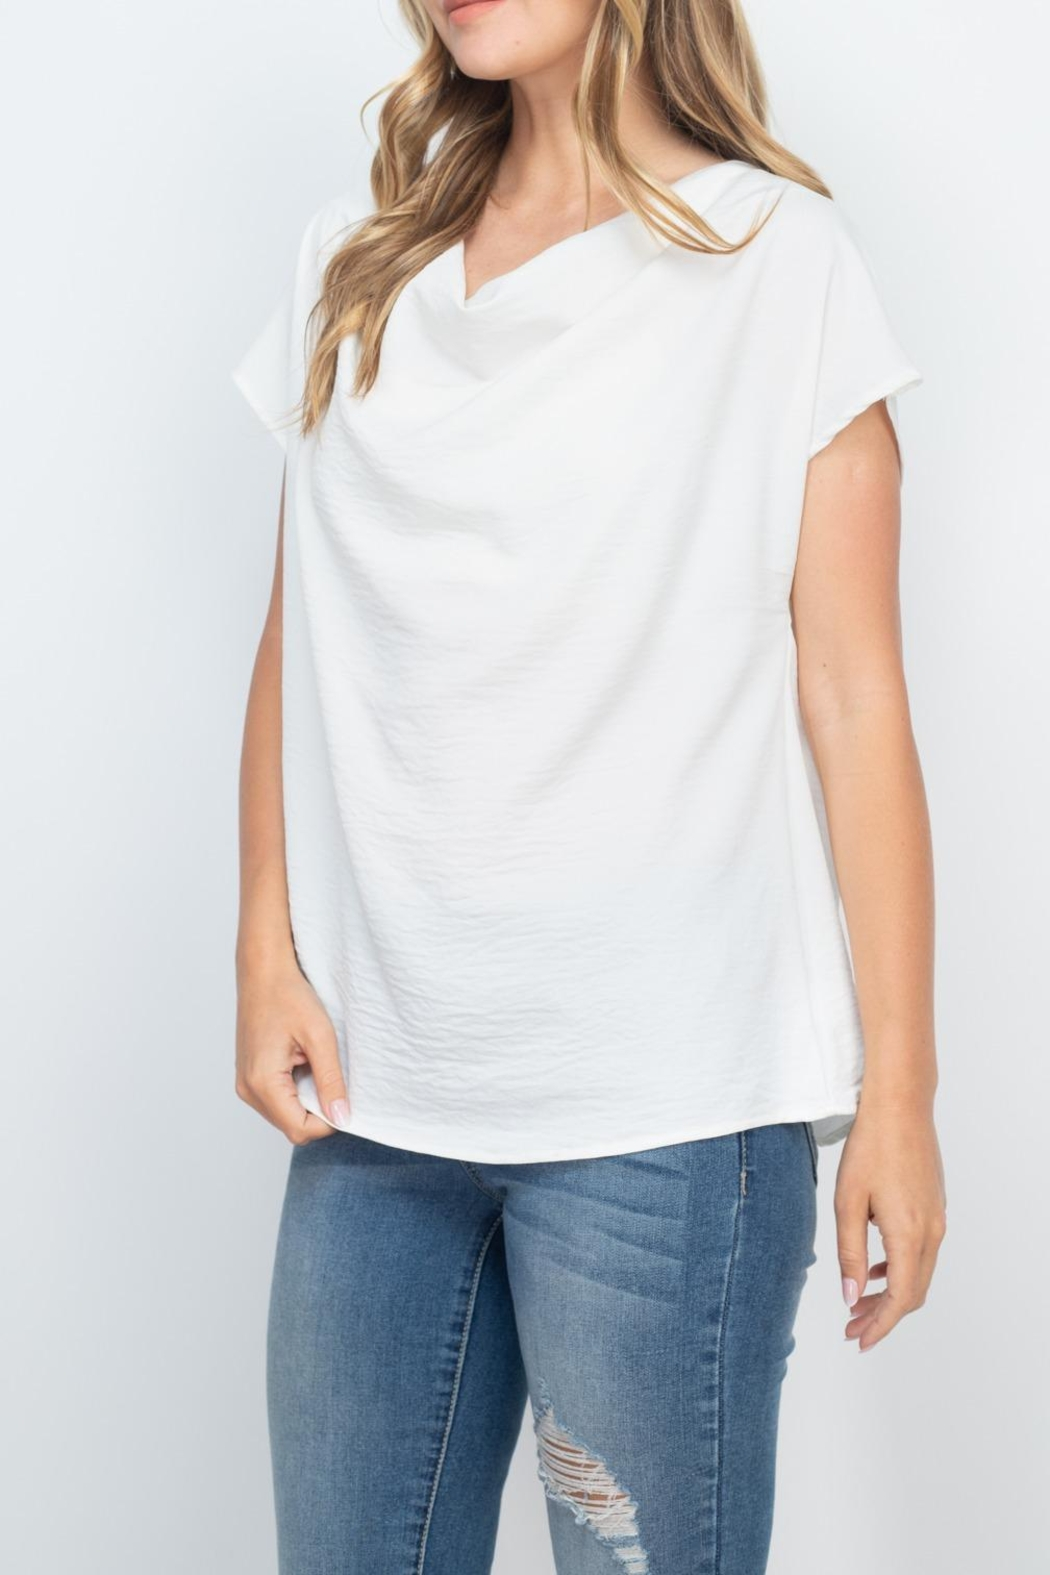 Riah Fashion Cap-Sleeve-Cowl-Neck-Woven-Top - Side Cropped Image